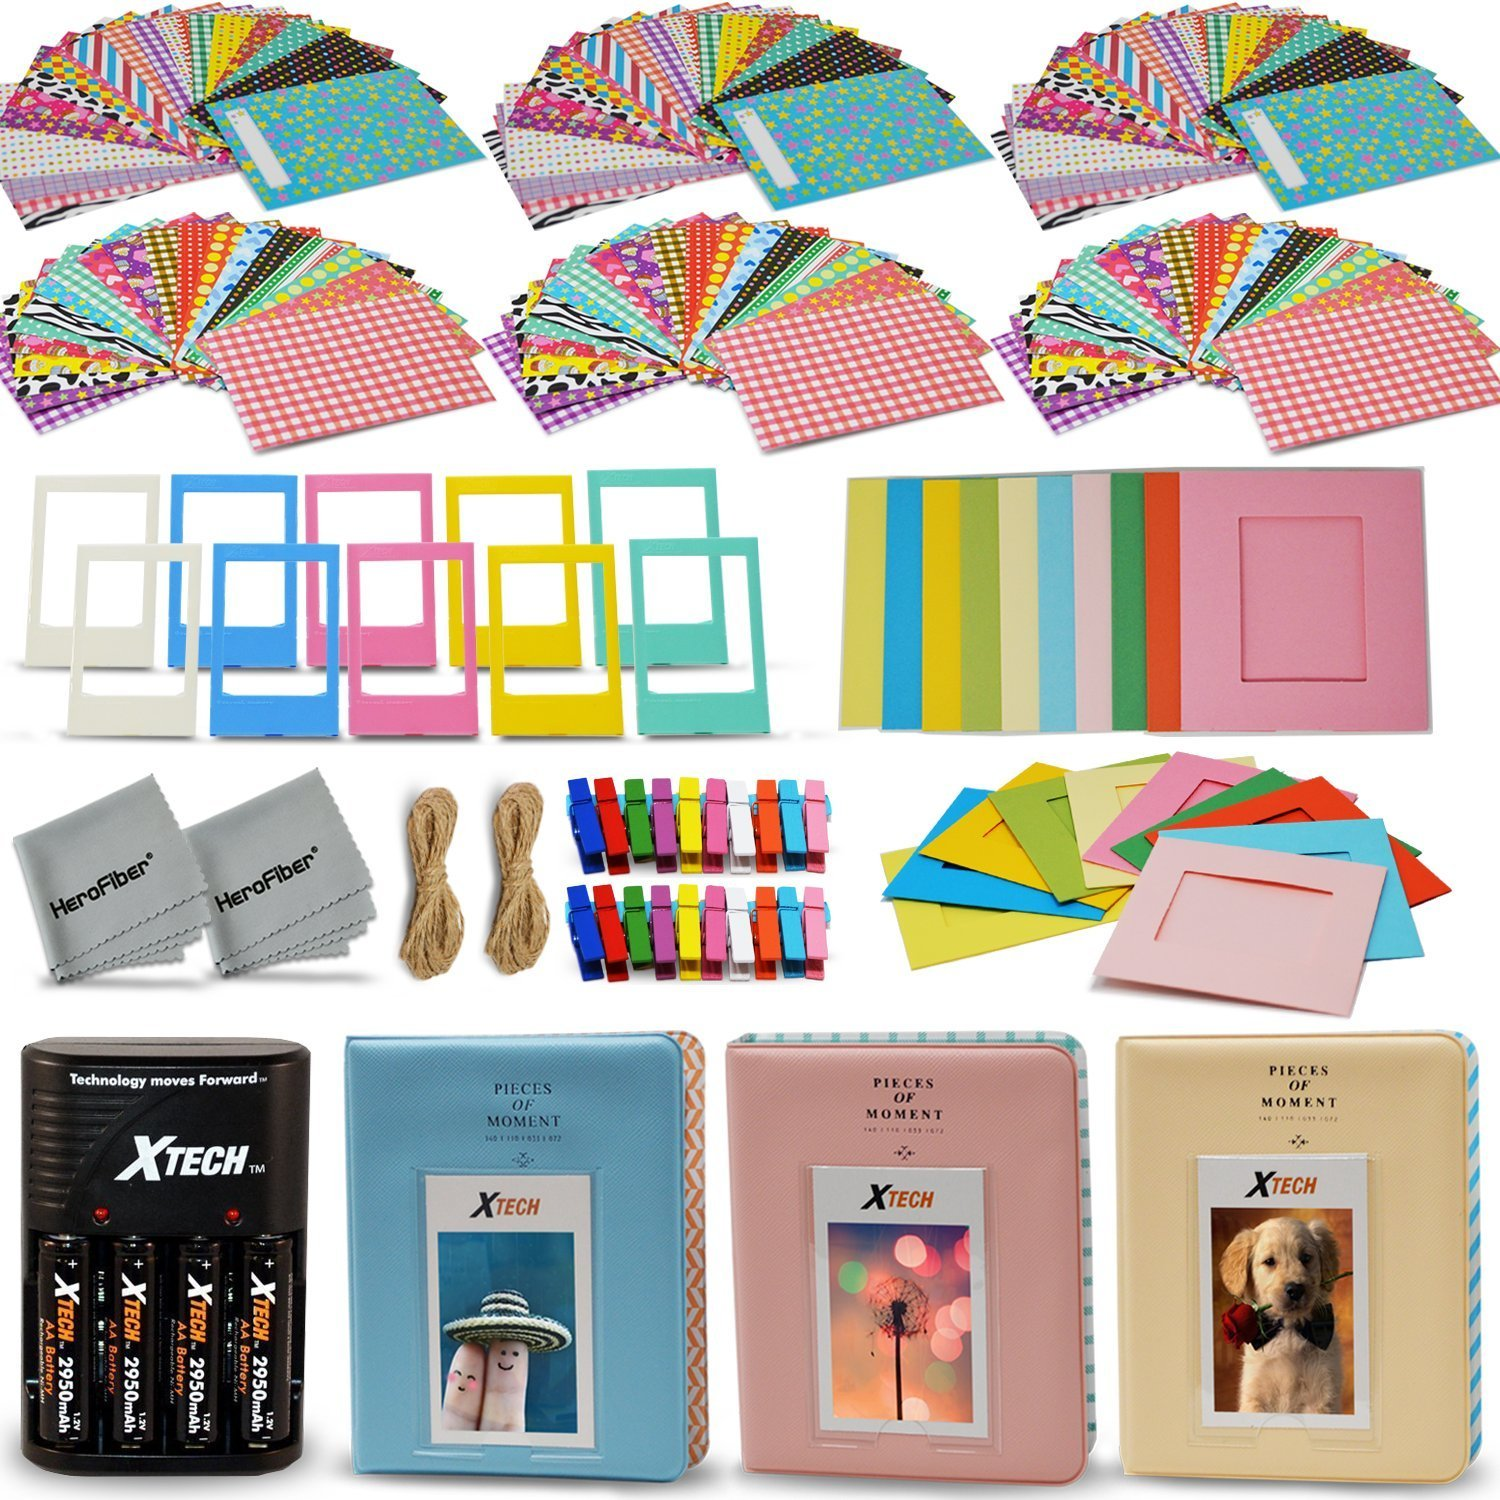 Xtech FujiFilm Instax Mini 9/8 ACCESSORIES KIT Bundle f/ Fujifilm Instax MINI 9 / MINI 8 Includes: 3 Photo Albums + AA Batteries & Charger + 120 Colorful Sticker Frames + Assorted Frames + More!